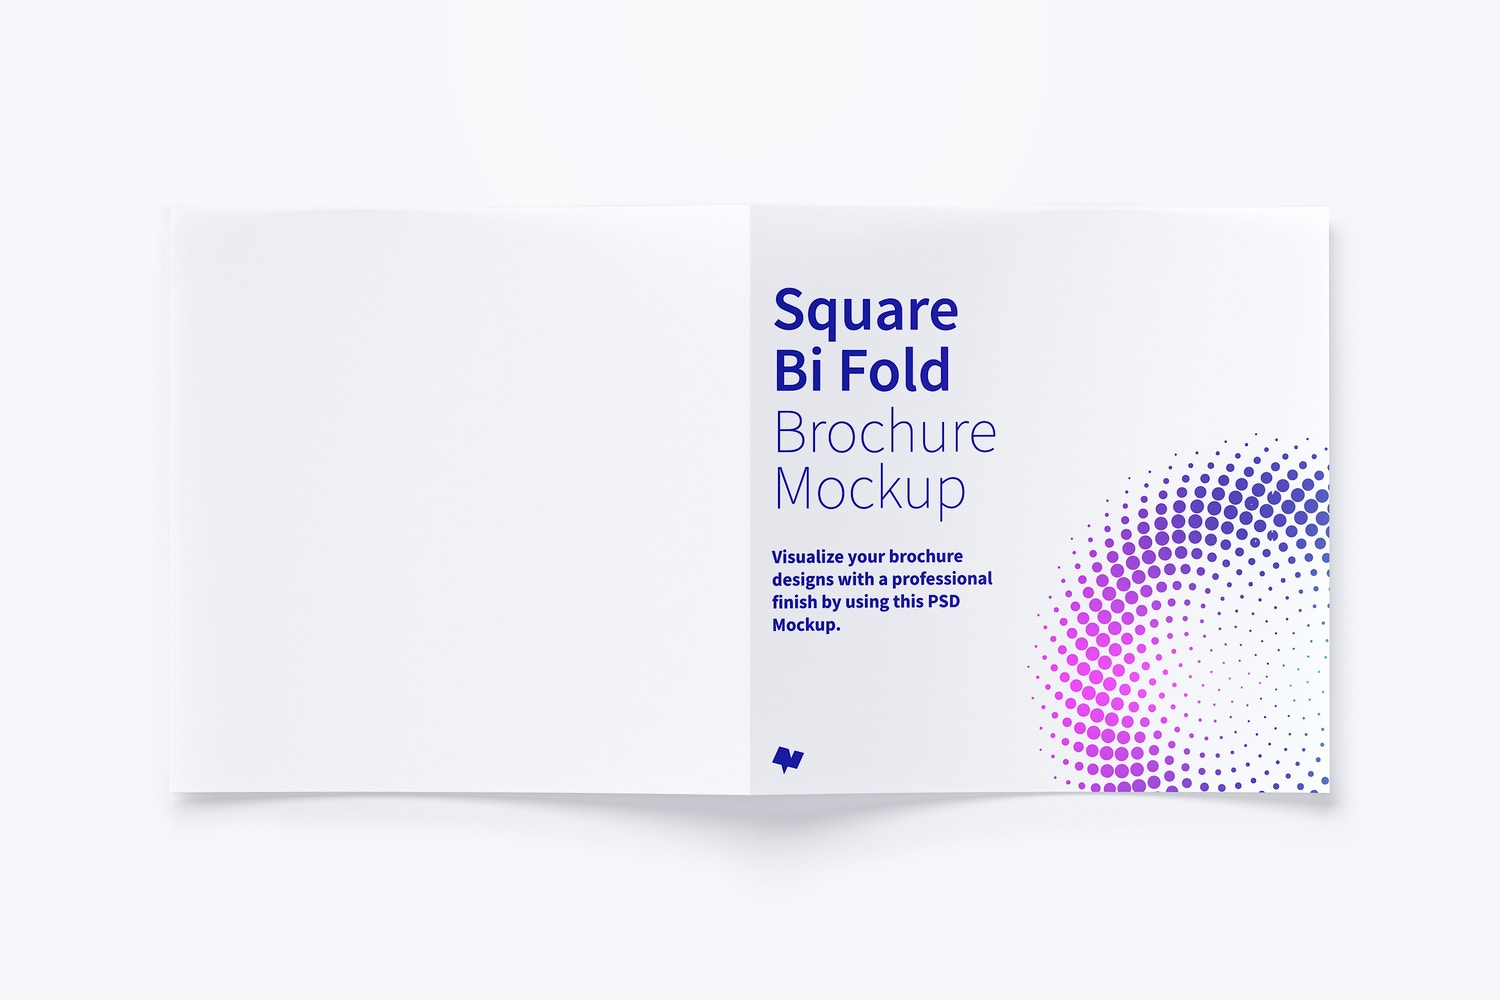 Square Bi Fold Brochure Mockup 03 by Original Mockups on Original Mockups